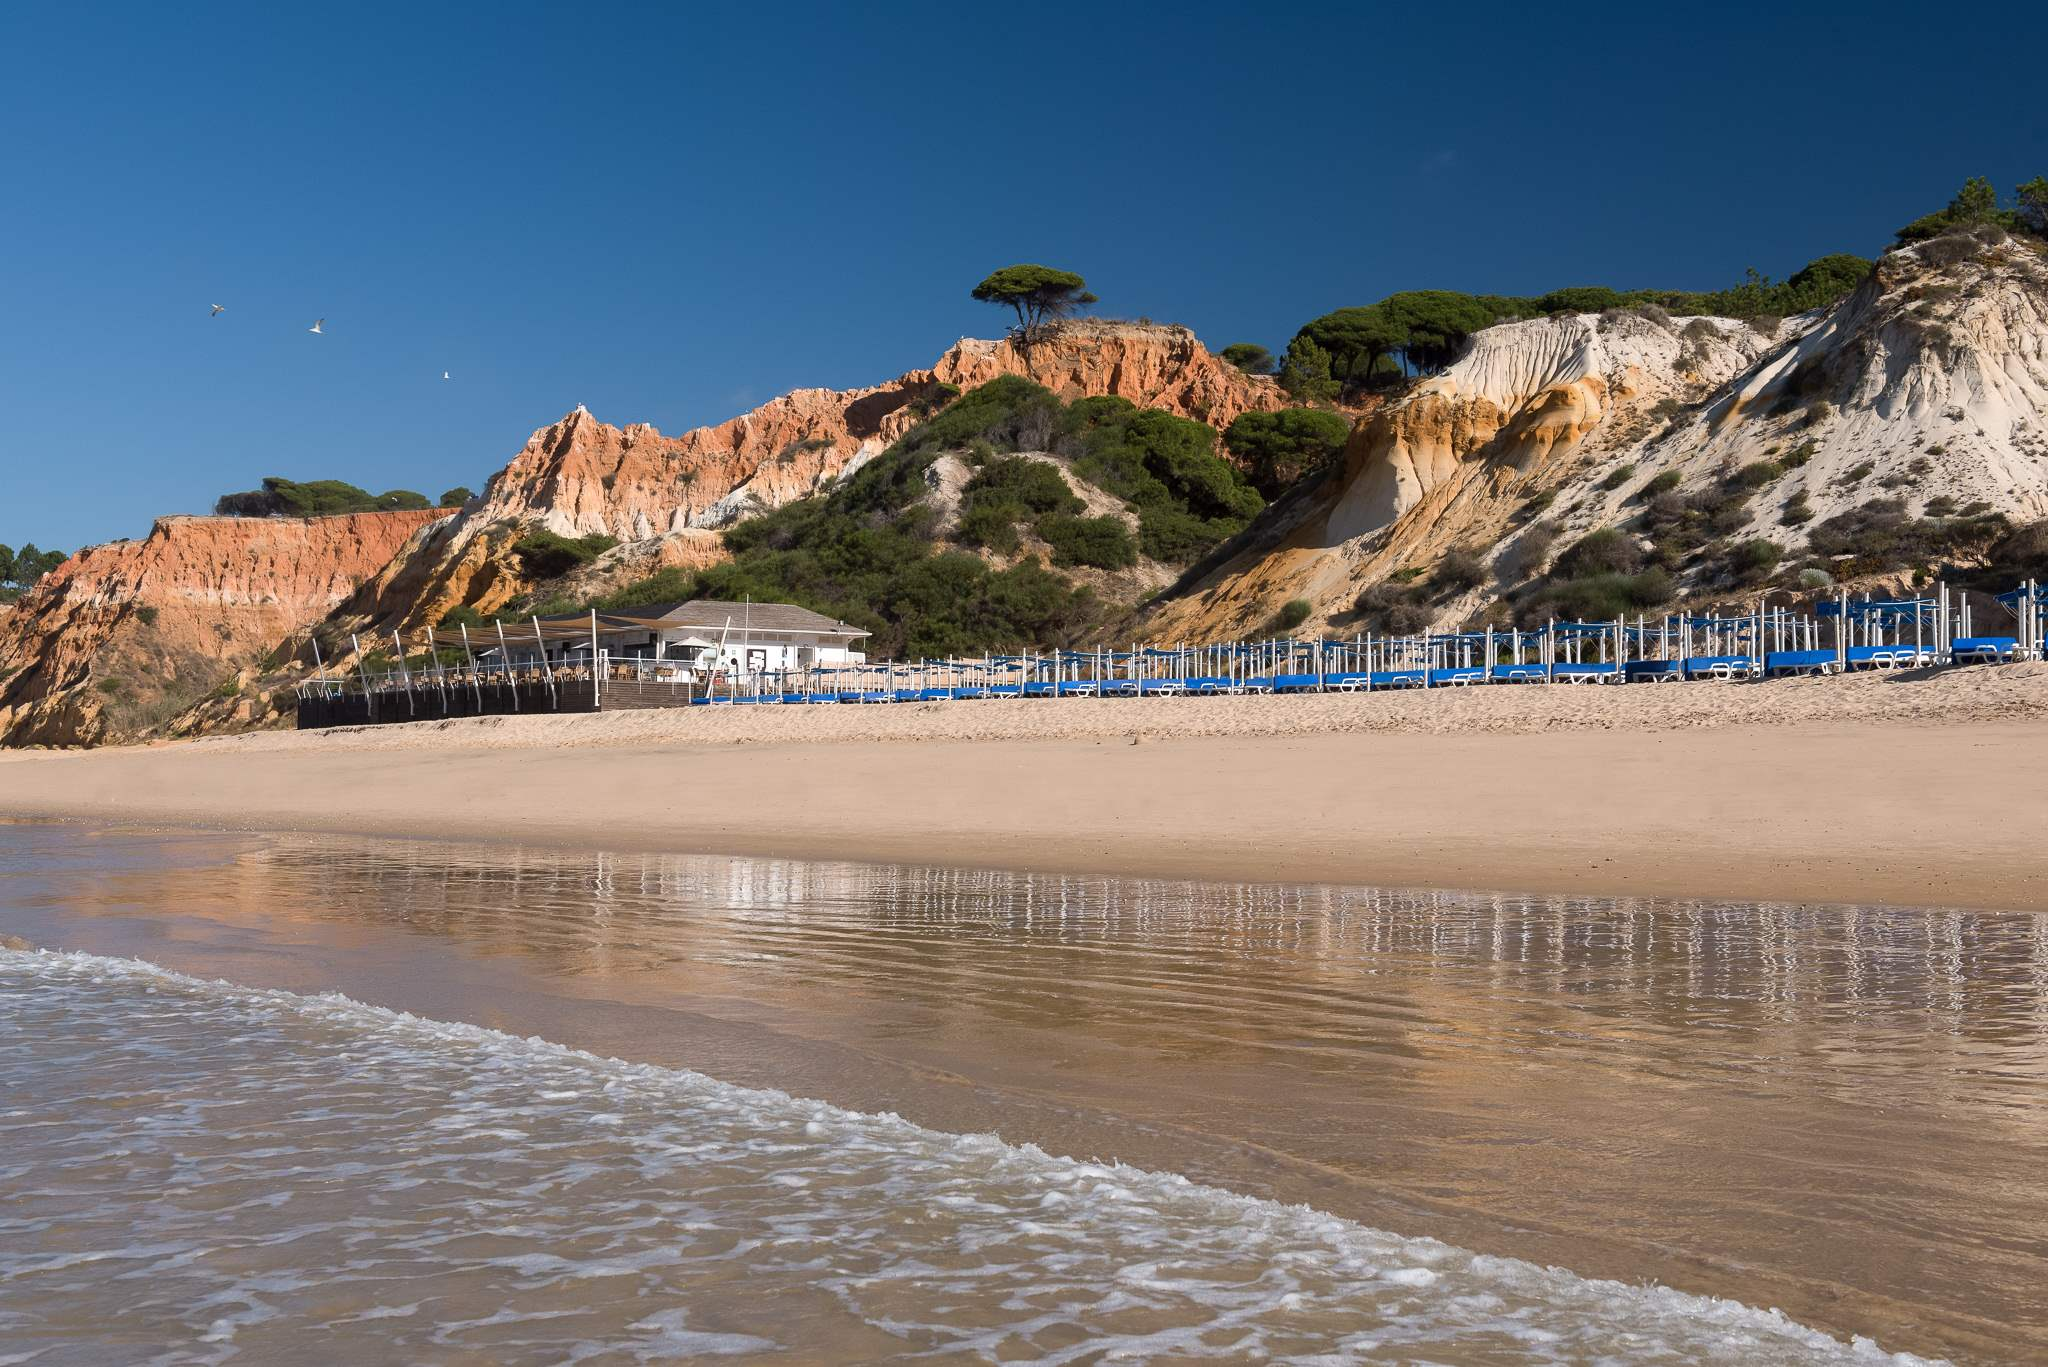 Pine Cliffs Villa Aurora, 4 bedroom villa in Pine Cliffs Resort, Algarve Photo #23